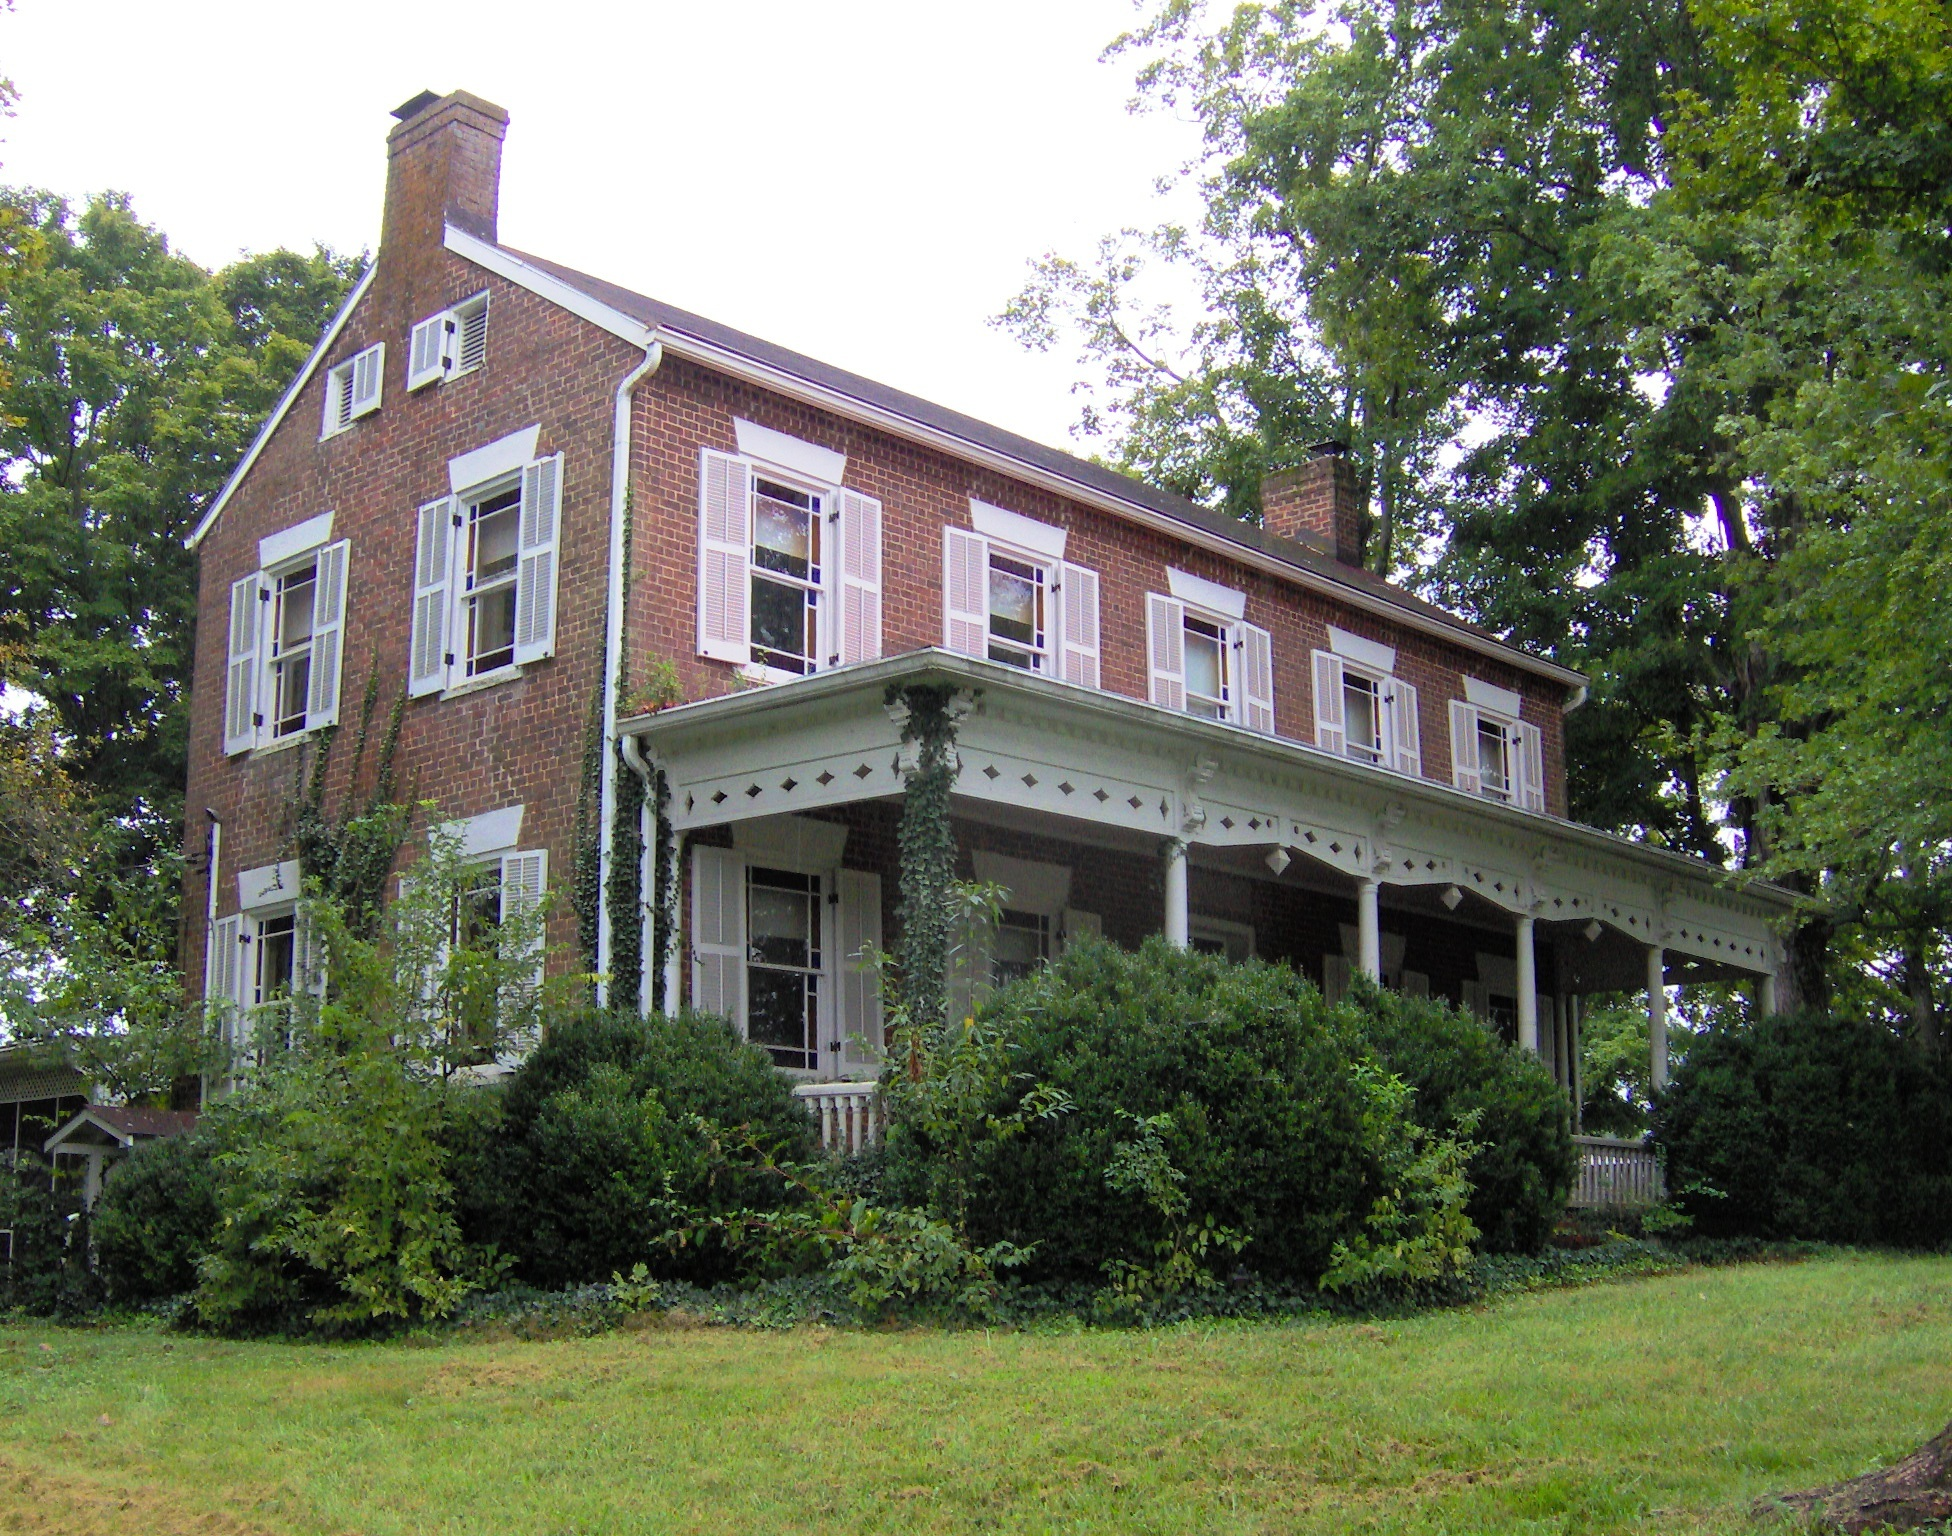 photo shows the front of the wheatland plantation home